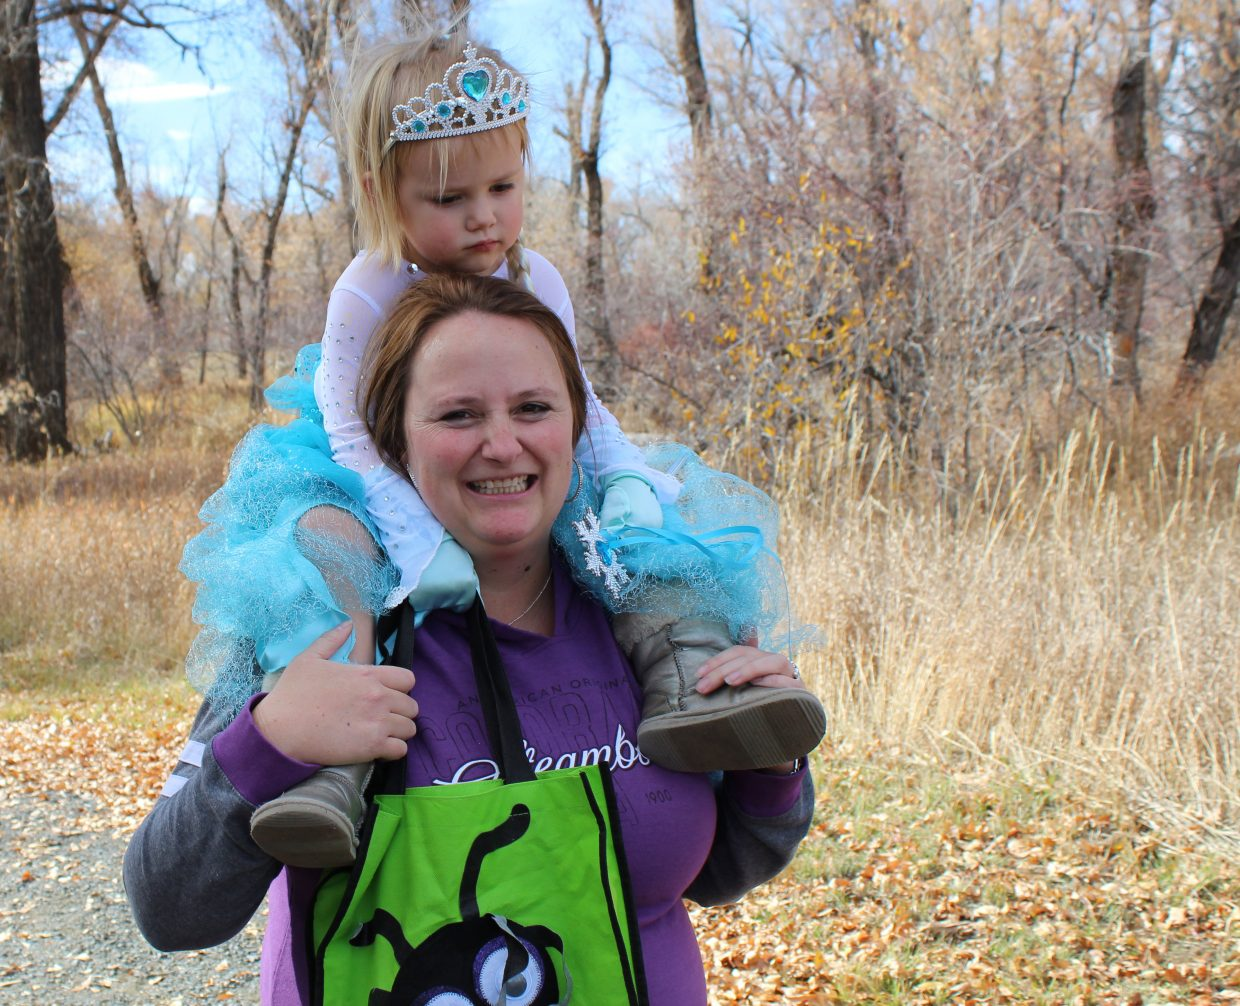 Kinsley Campbell, 2 1/2, gets a lift from her mom, Danielle Campbell, during this year's Hike or Treat event, held Saturday at Yampa River State Park.